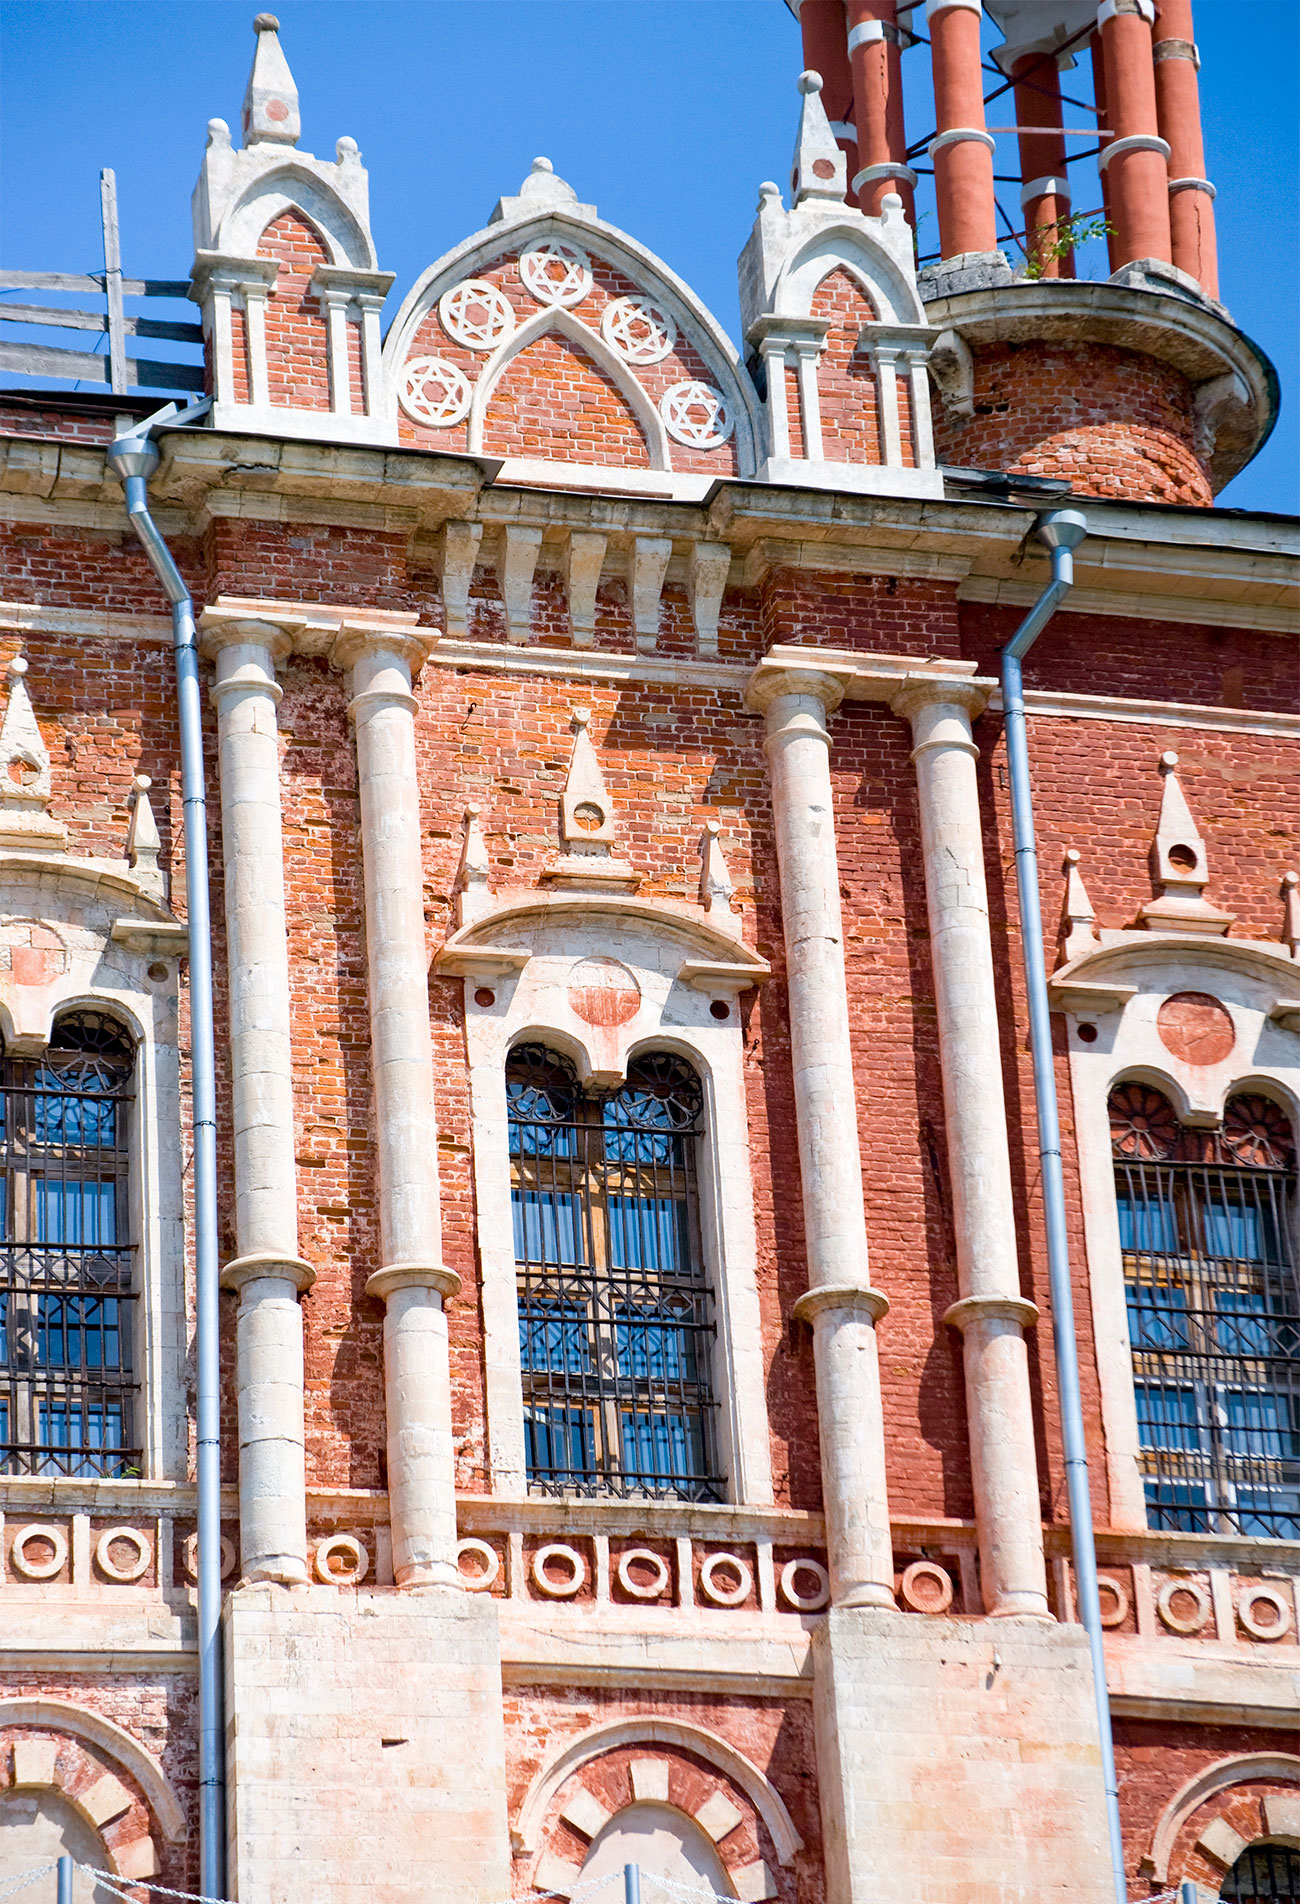 Cathedral of St. Nicholas, south facade, decorative details. July 5, 2015. / Photo: William Brumfield